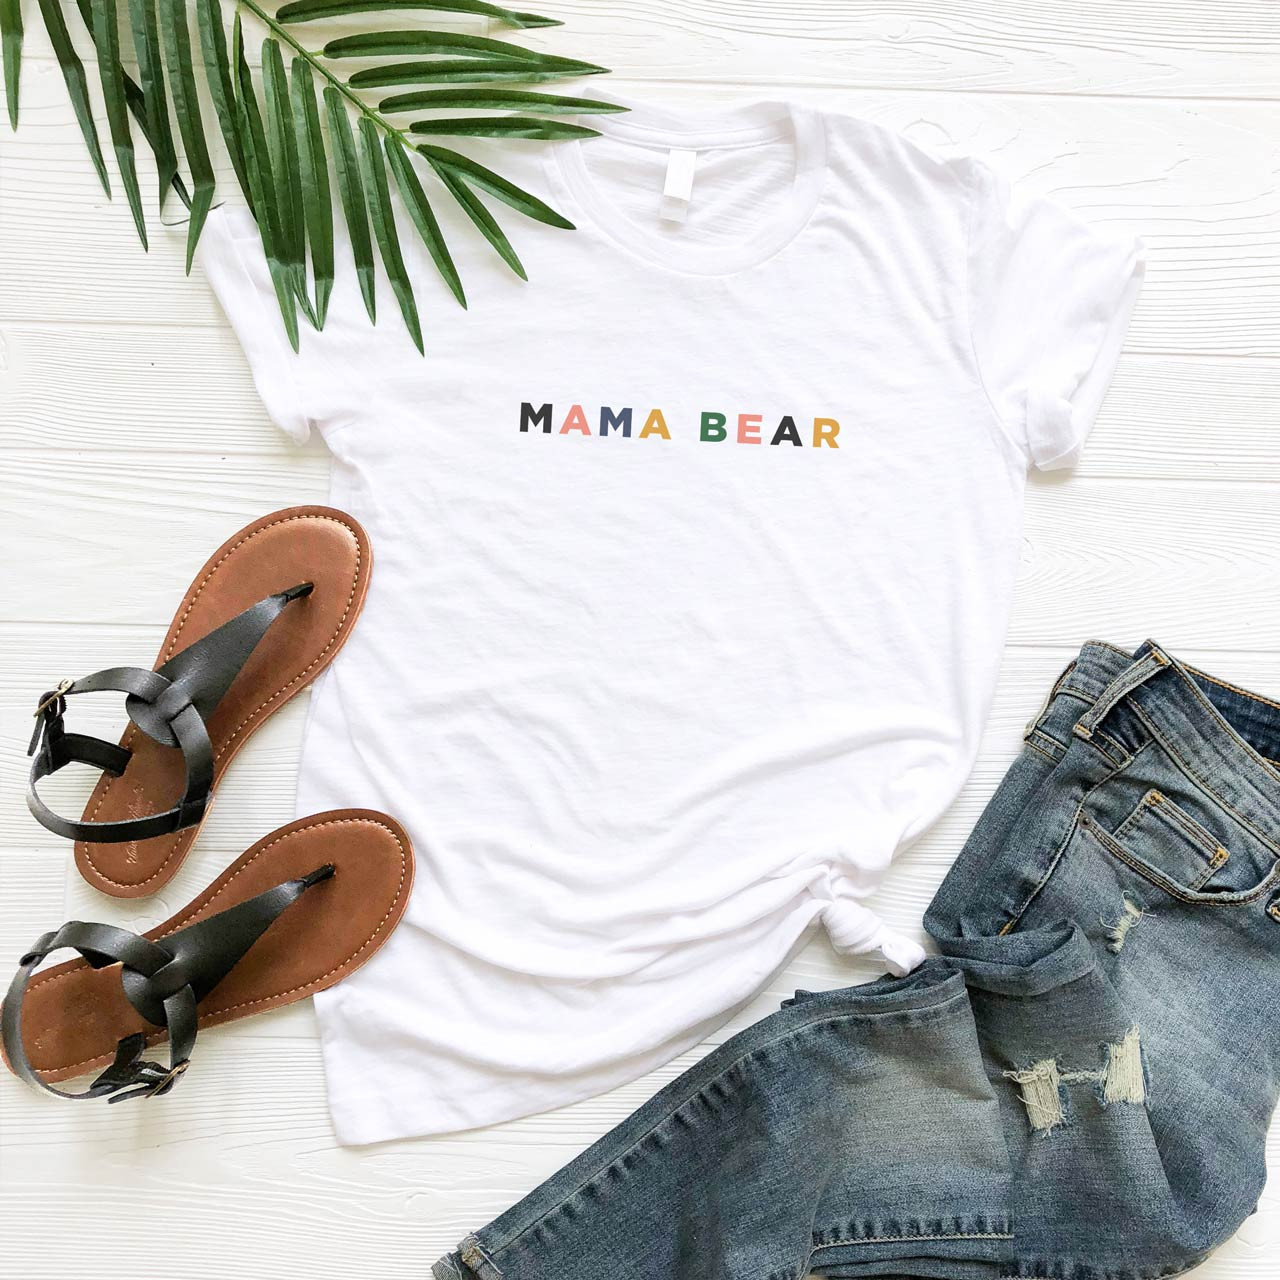 MAMA BEAR Cotton T-Shirt (Color on White) from The Printed Home